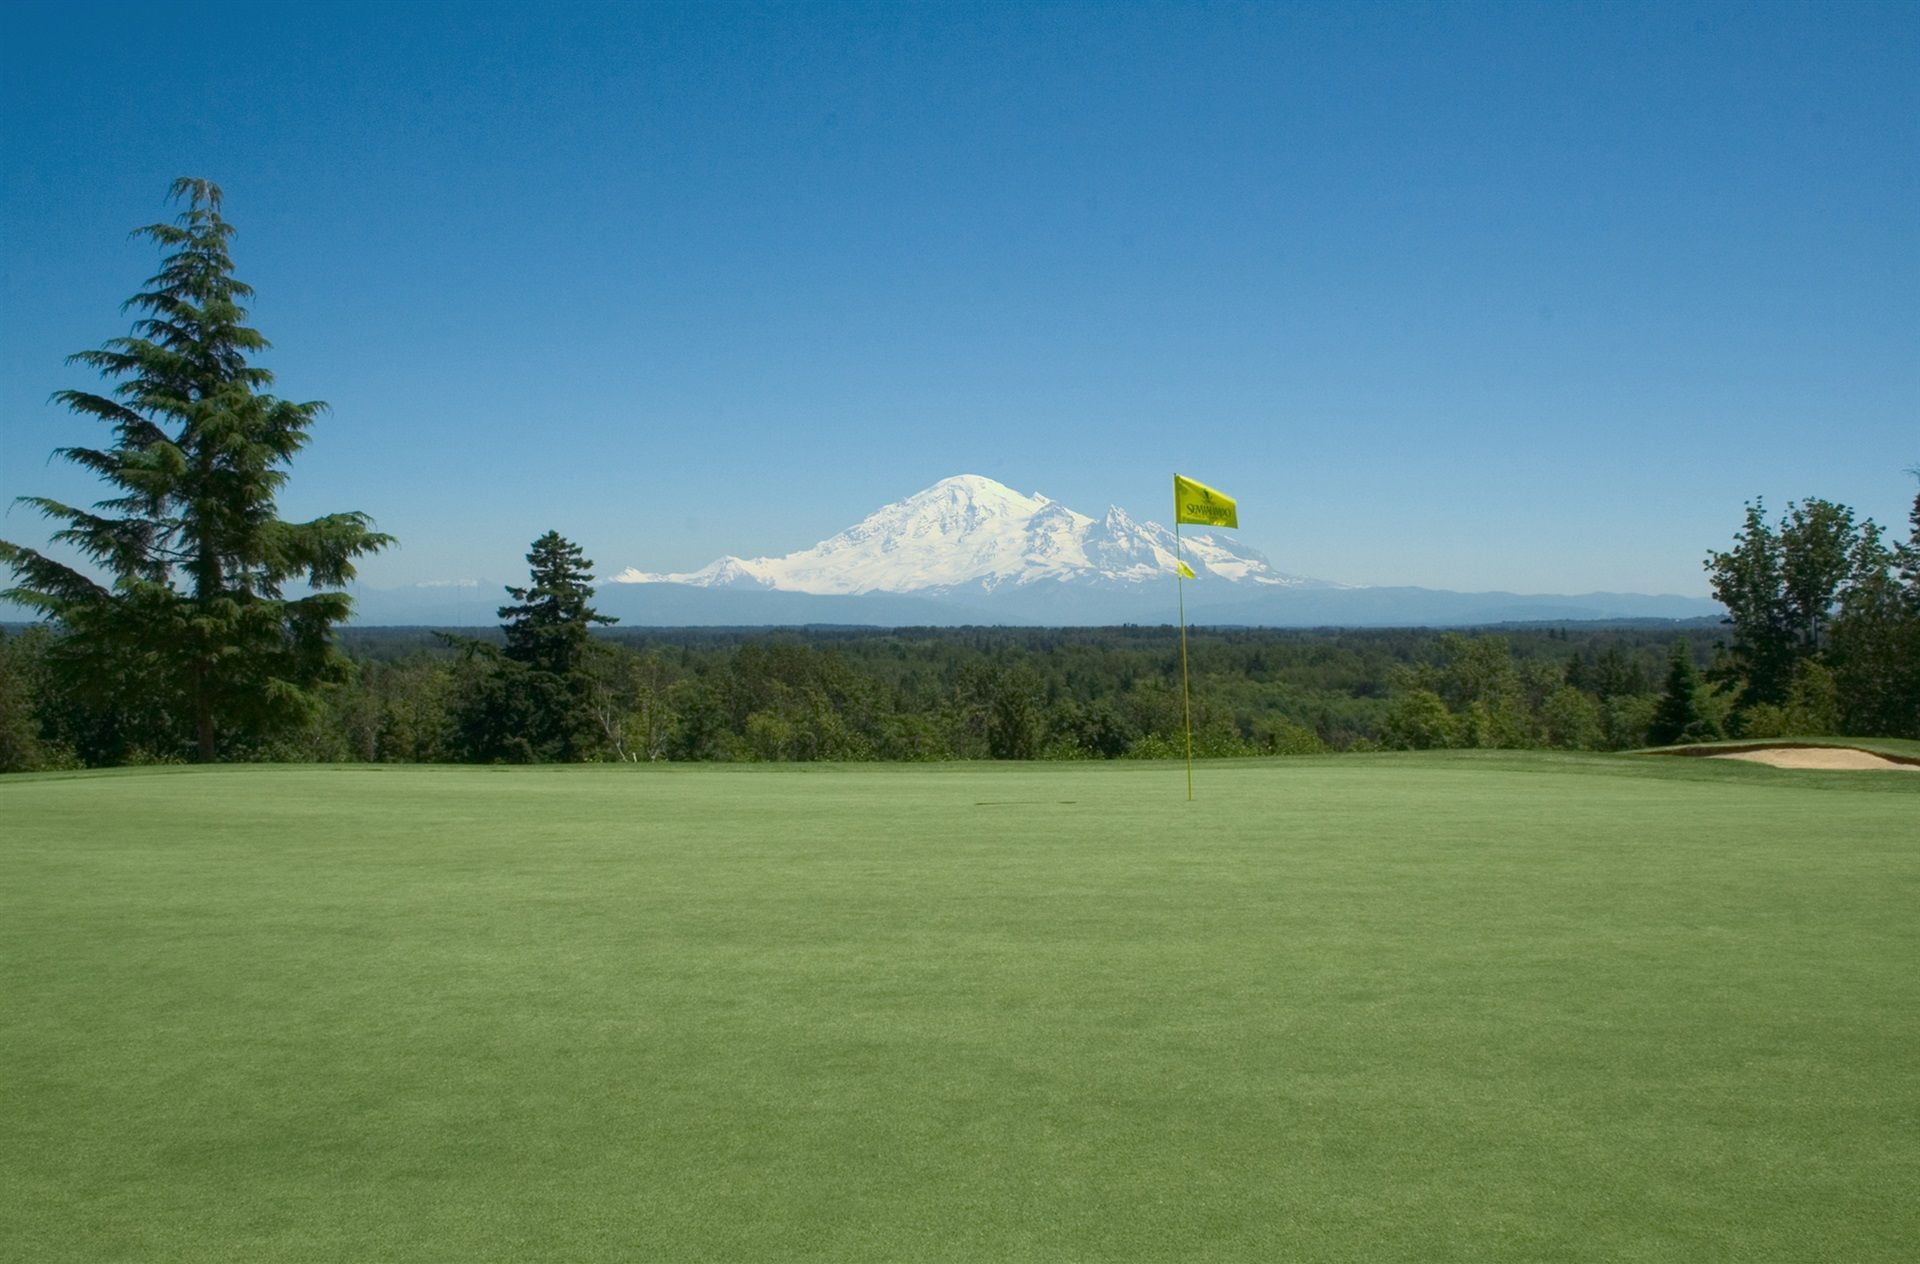 Golf year-round at one of two award-winning golf courses. This is the incredible view from the 4th hole at Semiahmoo Golf and Country Club.<p></p>